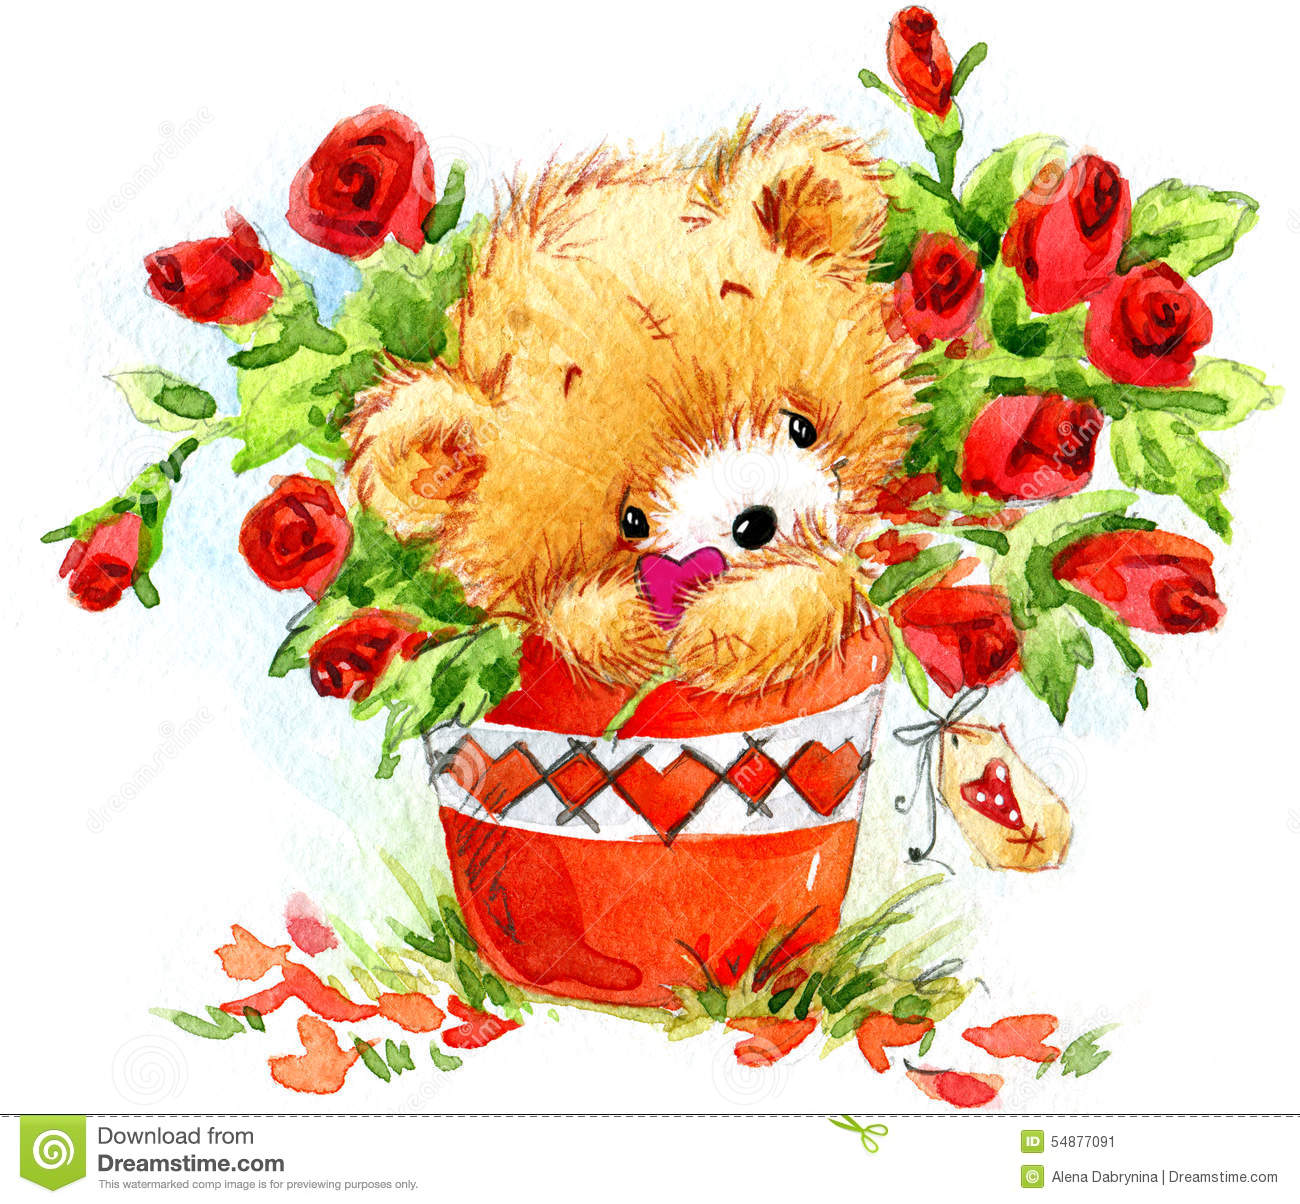 Catnip Toys For Valentine S Day : Valentine day funny teddy bear and red heart stock